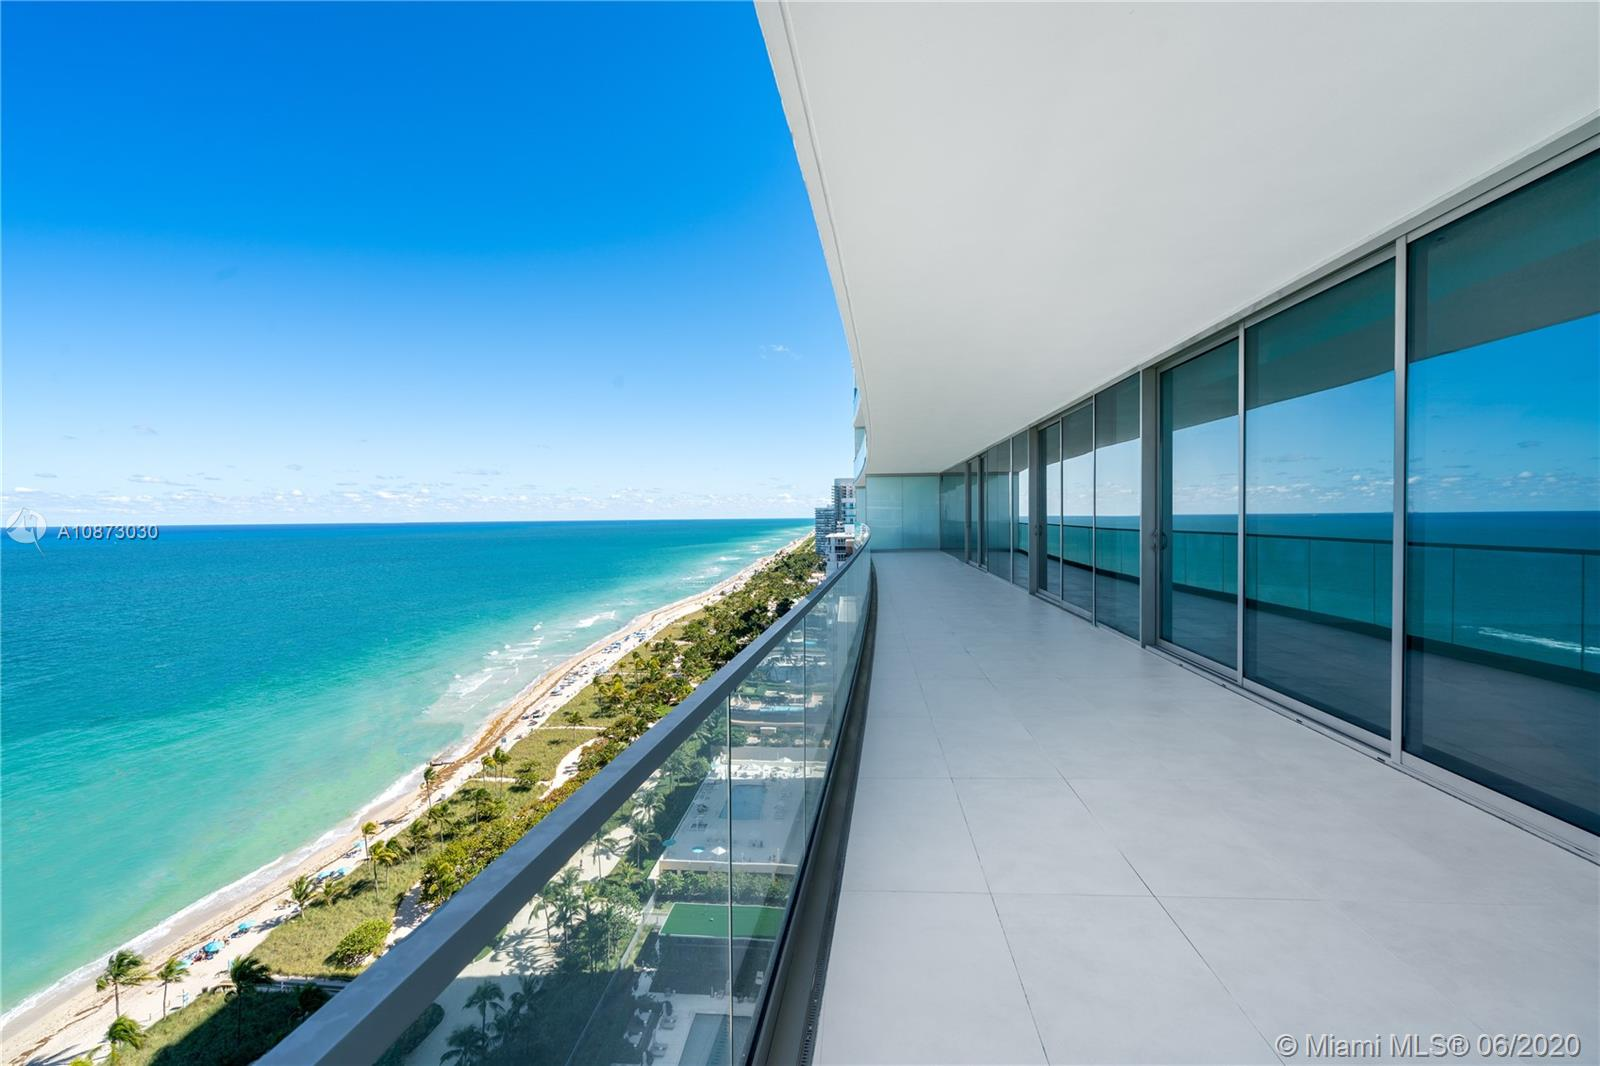 10203 Collins Ave, Unit #2001 Luxury Real Estate